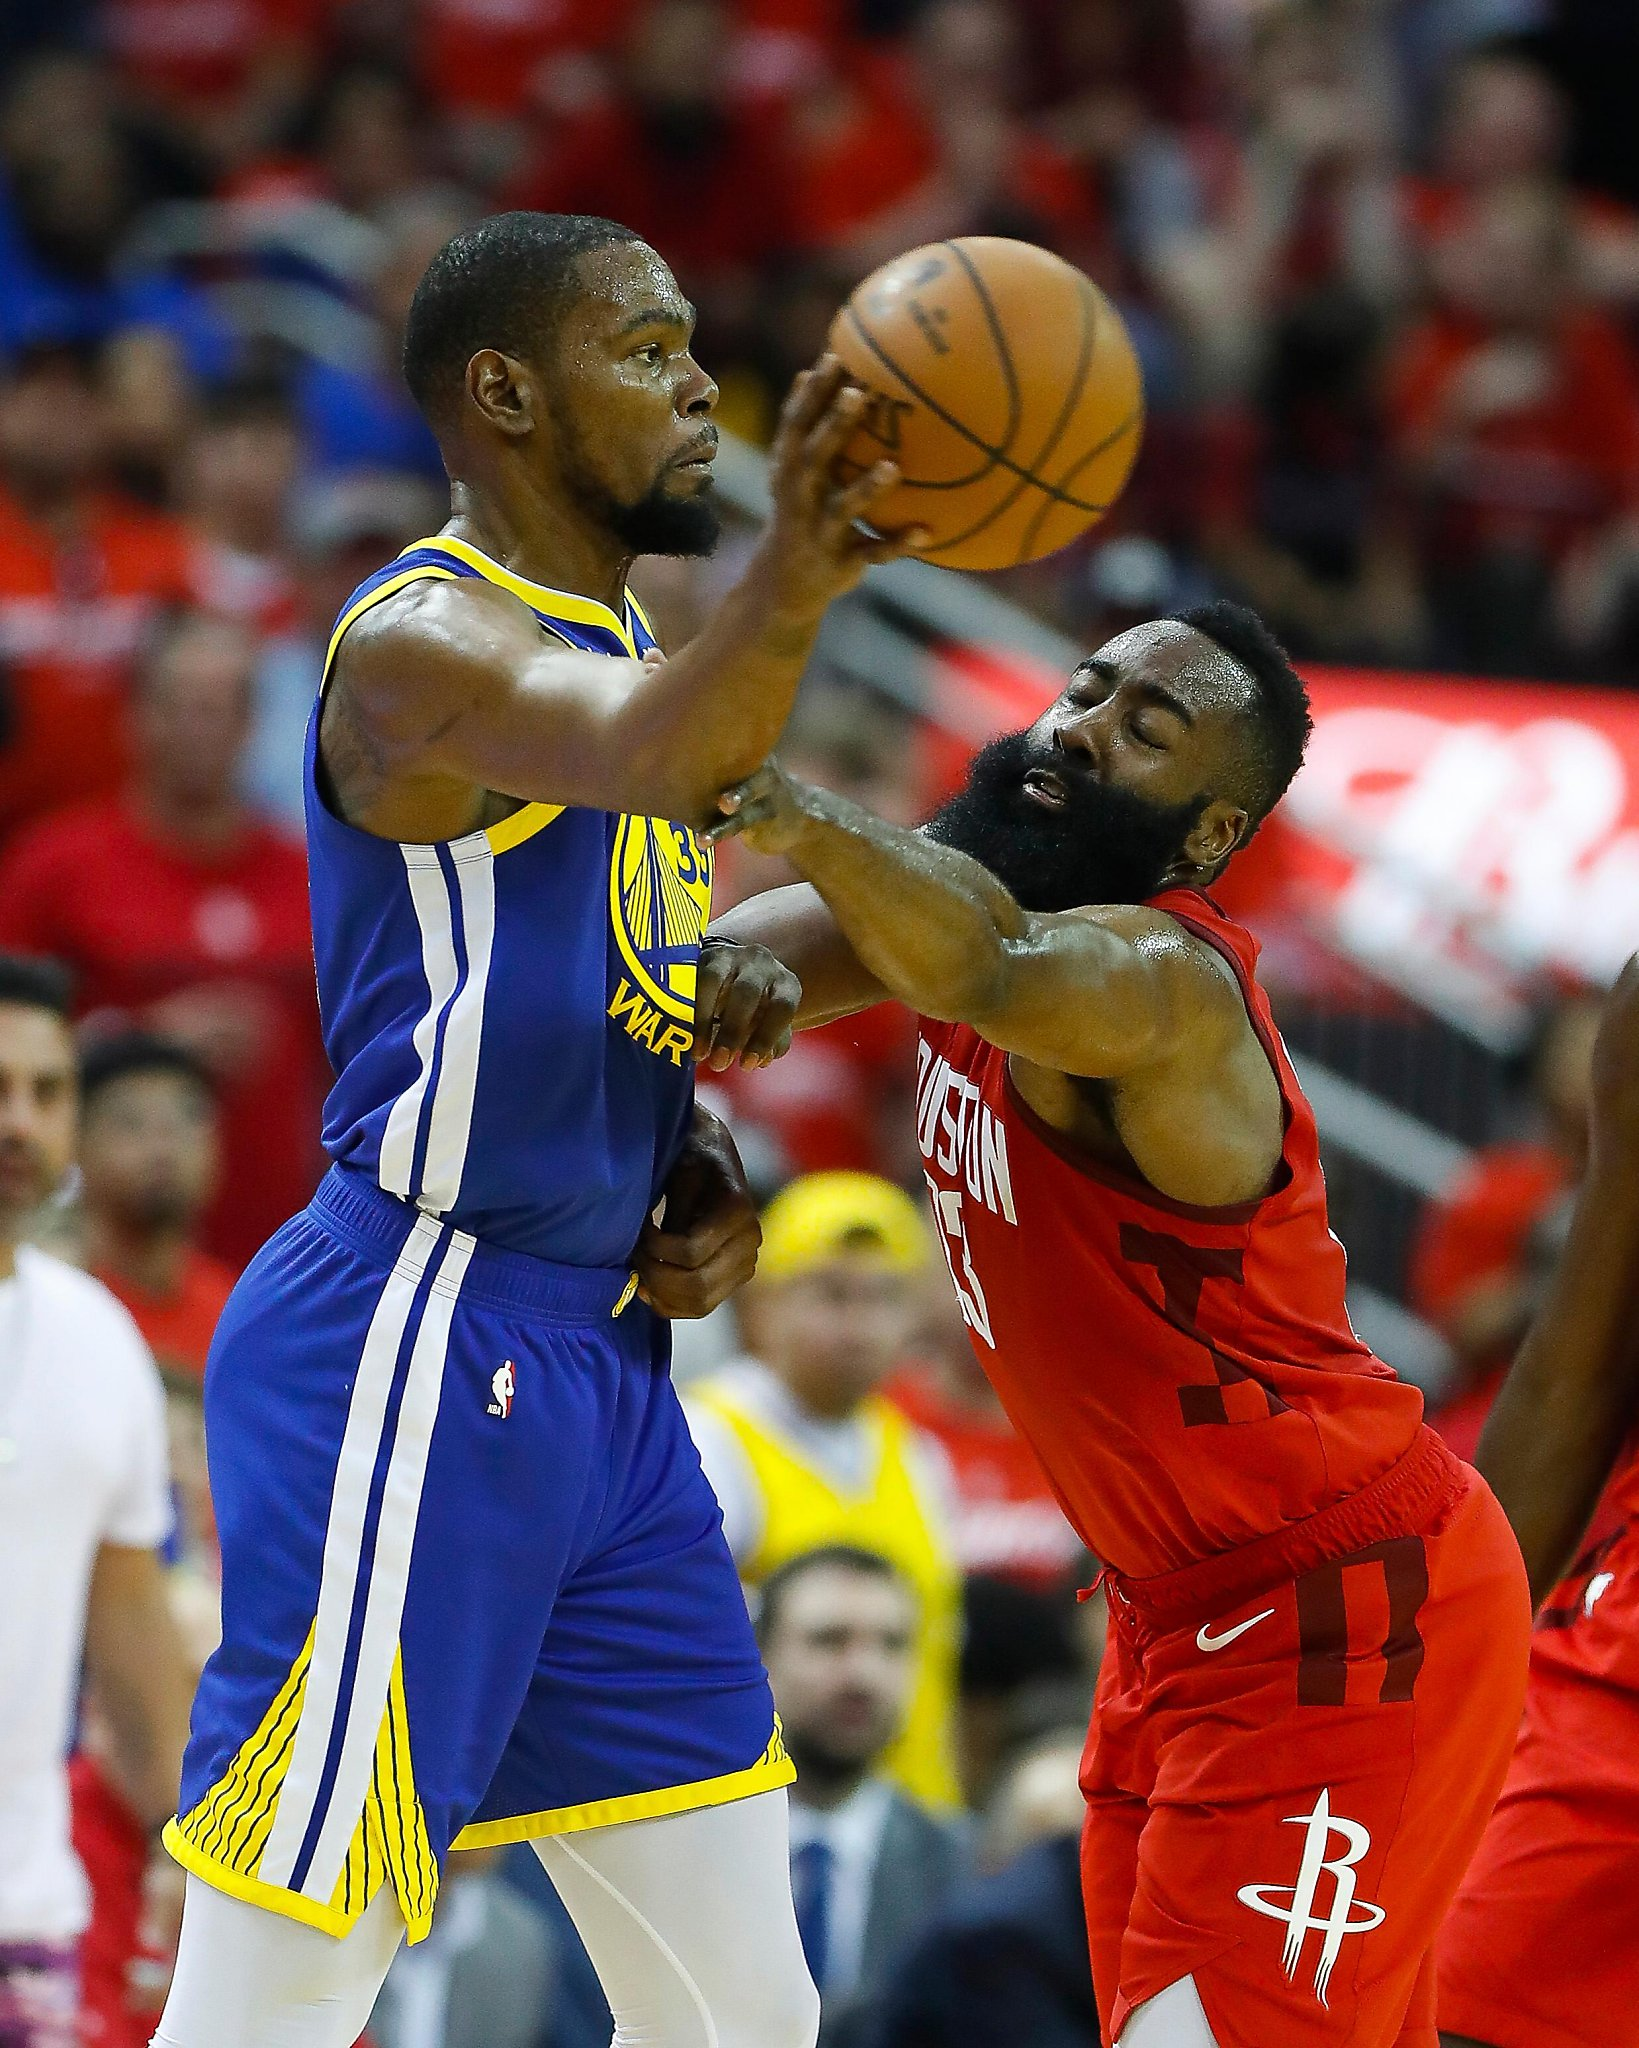 Golden State Warriors Record Without Steph Curry: Warriors Fall To Rockets In Overtime After Giving Up